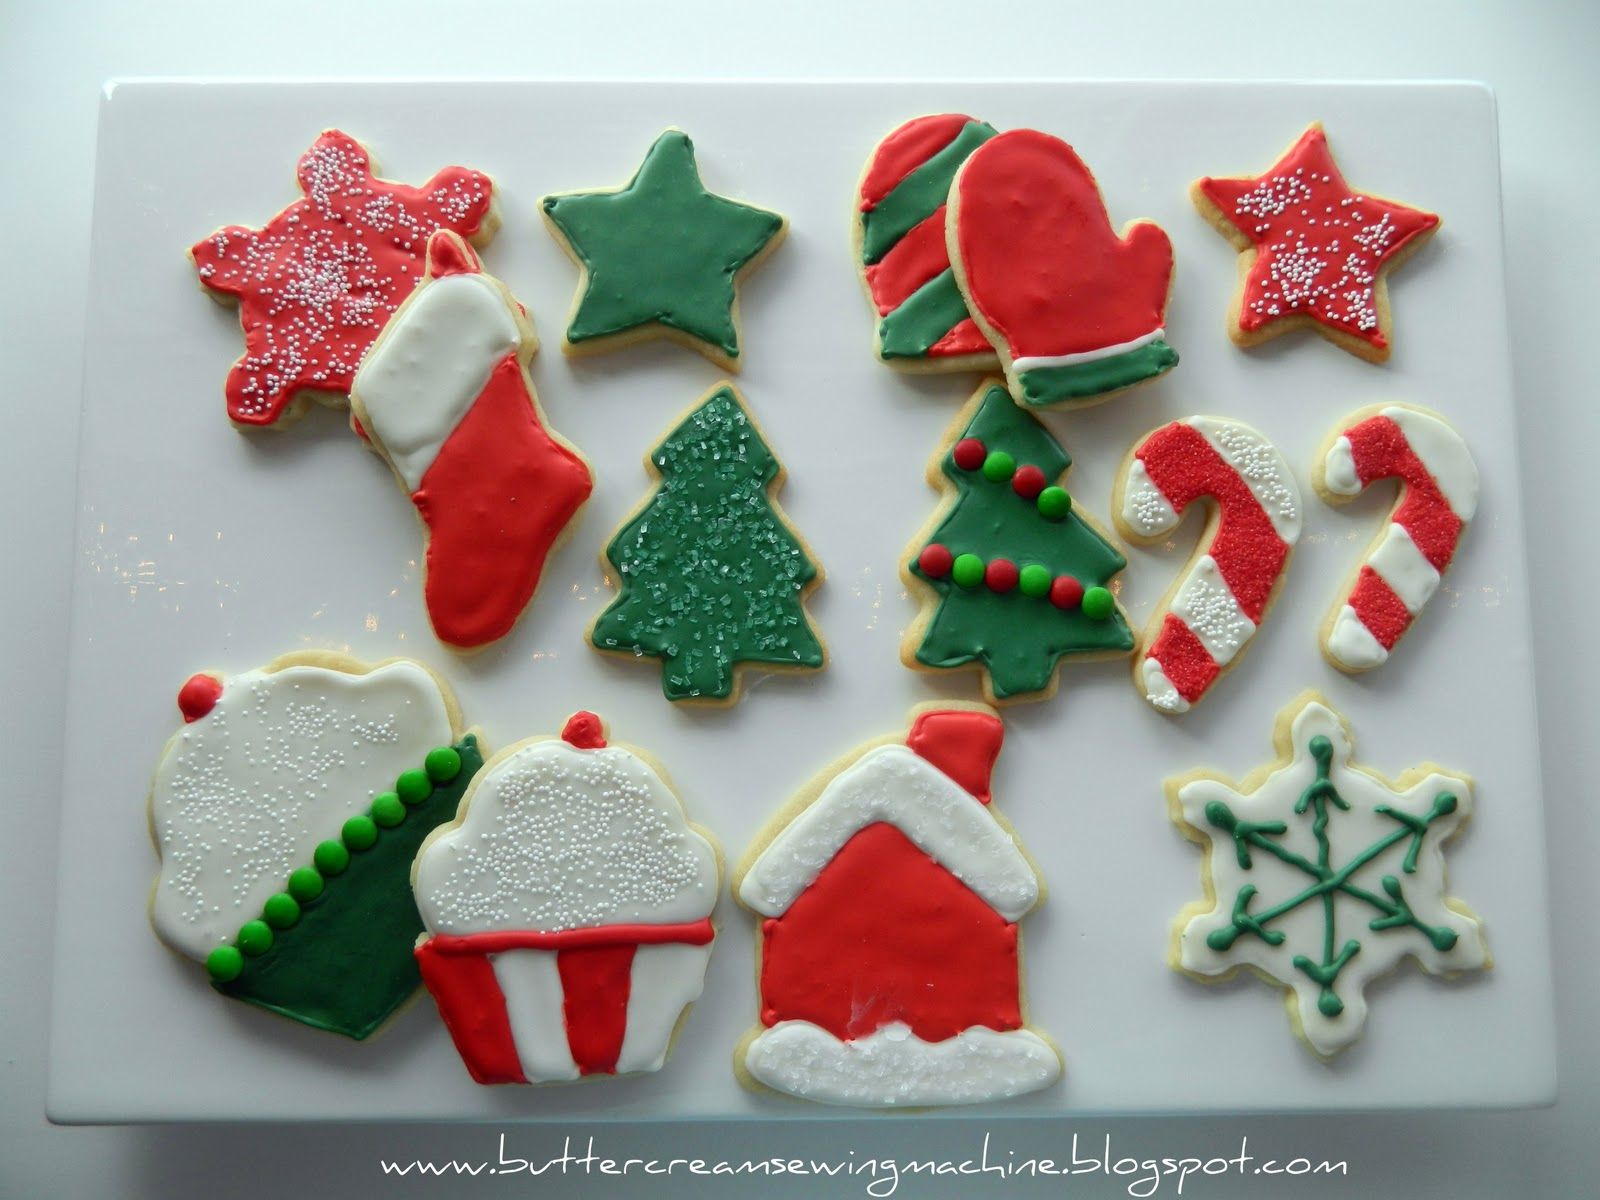 wednesday december 28 2011 - How To Decorate Christmas Cookies With Royal Icing